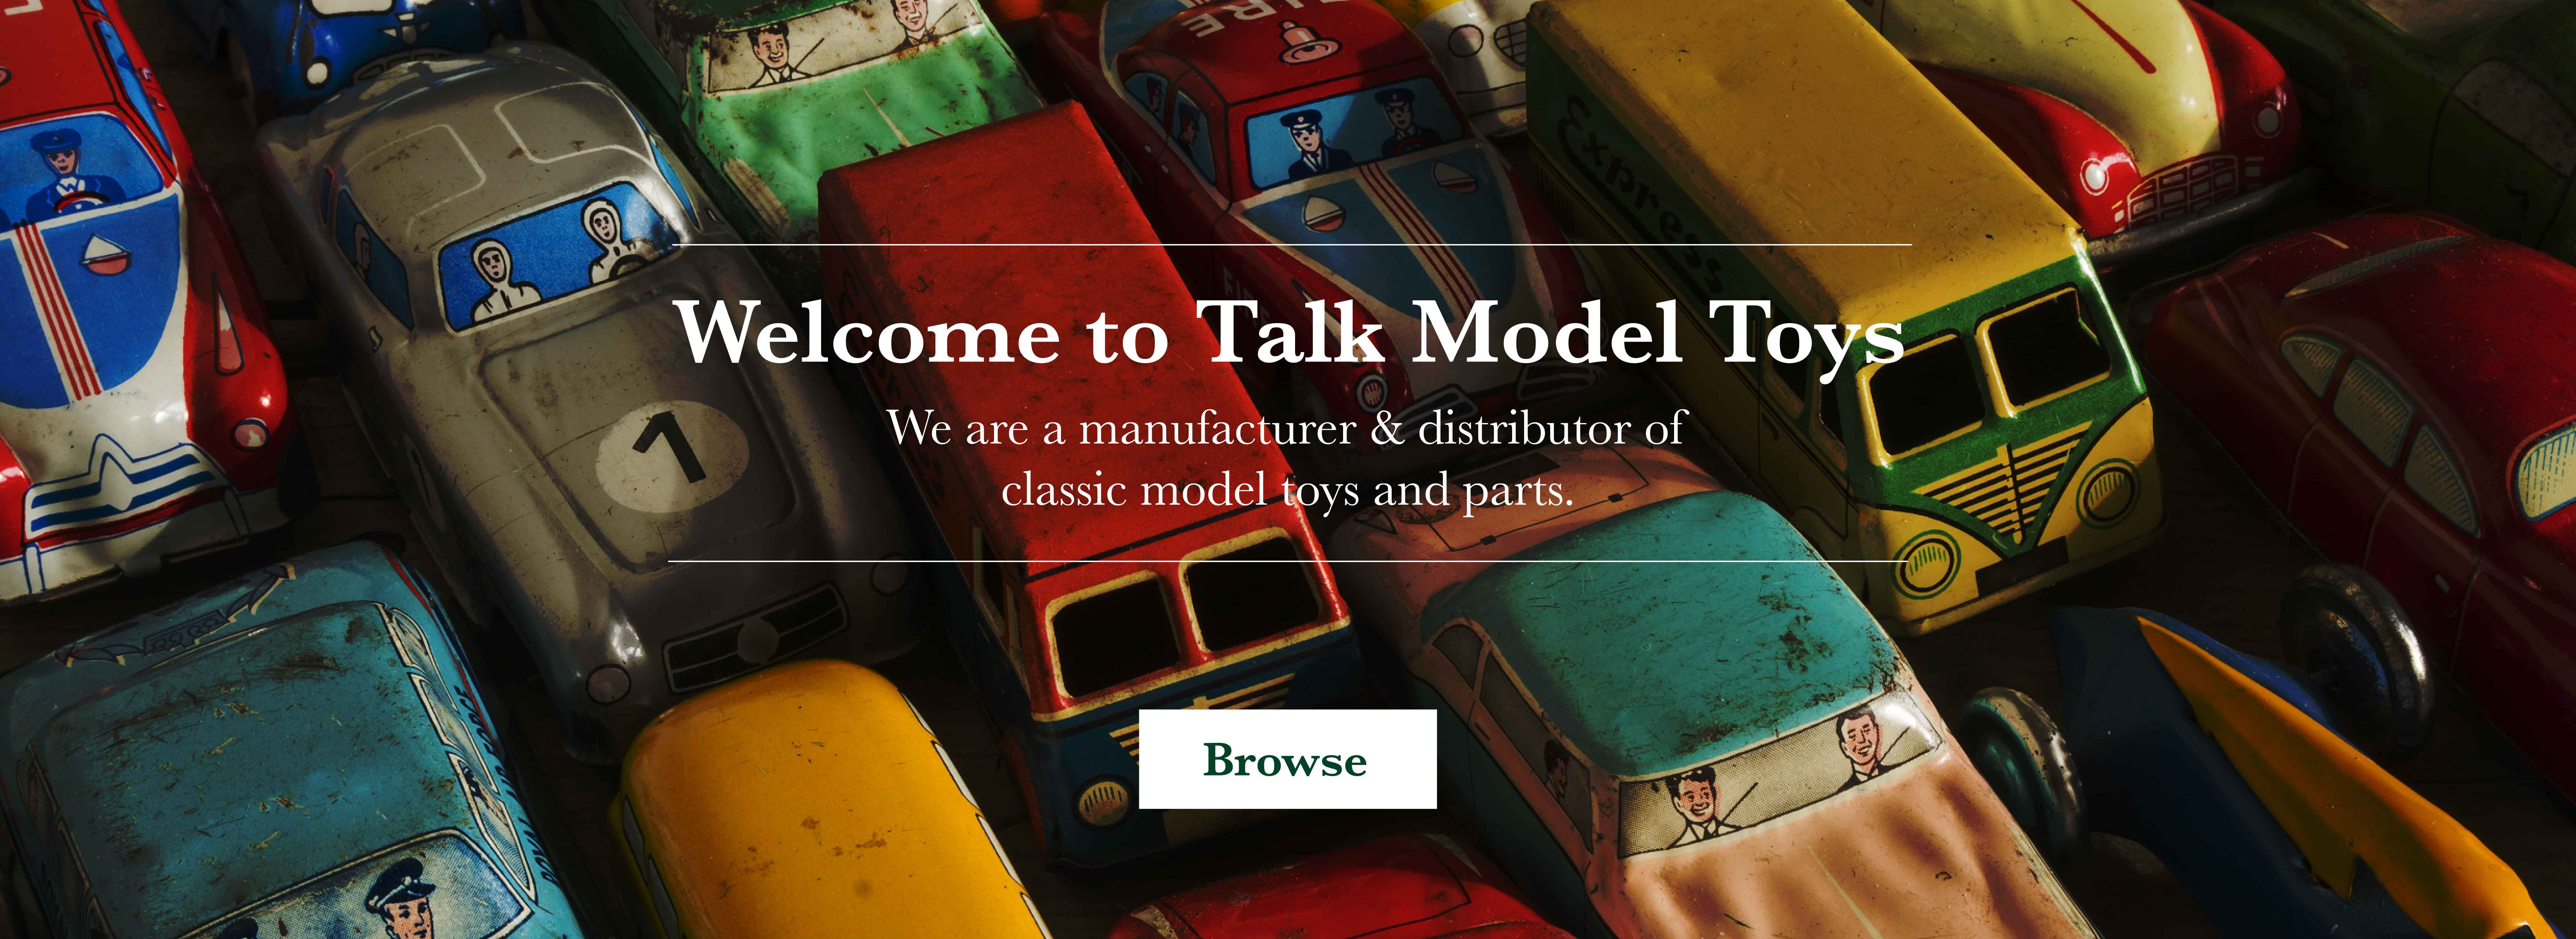 We are a manufacturer of classic model toys & parts